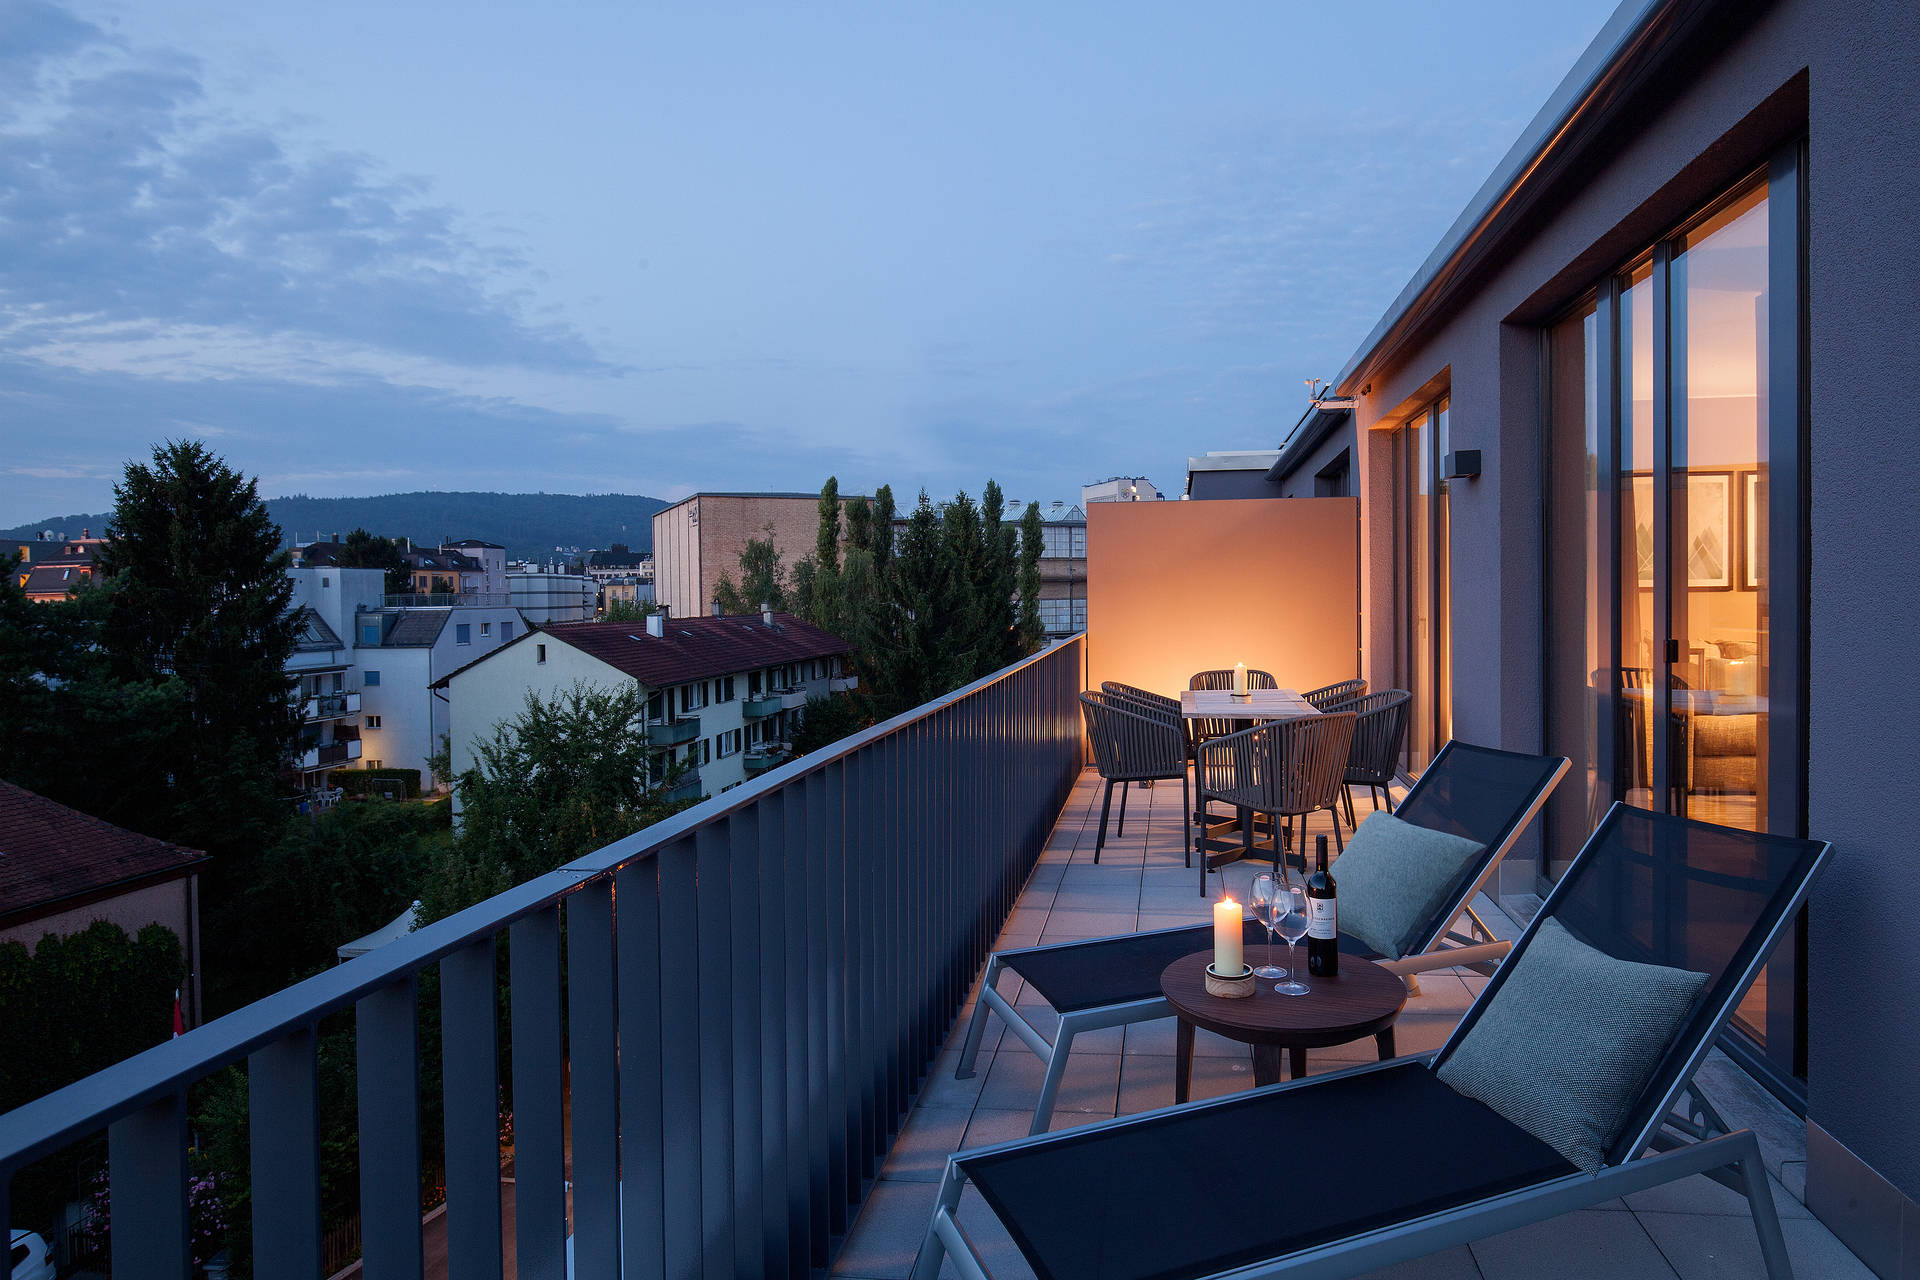 Rooftop Suite terrace in ACASA Suites Zurich with a breathtaking view